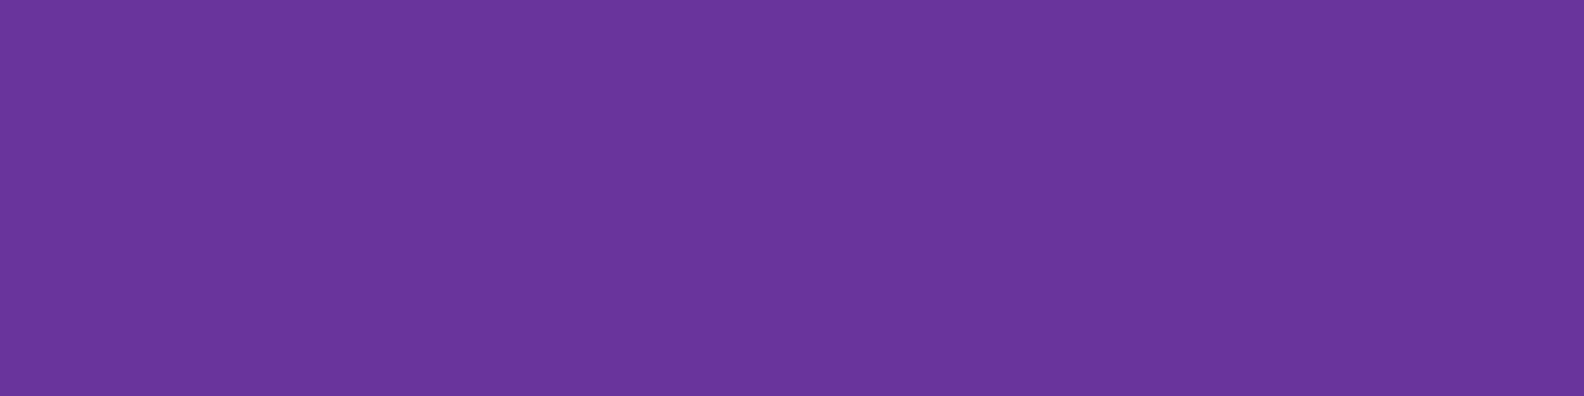 1584x396 Purple Heart Solid Color Background